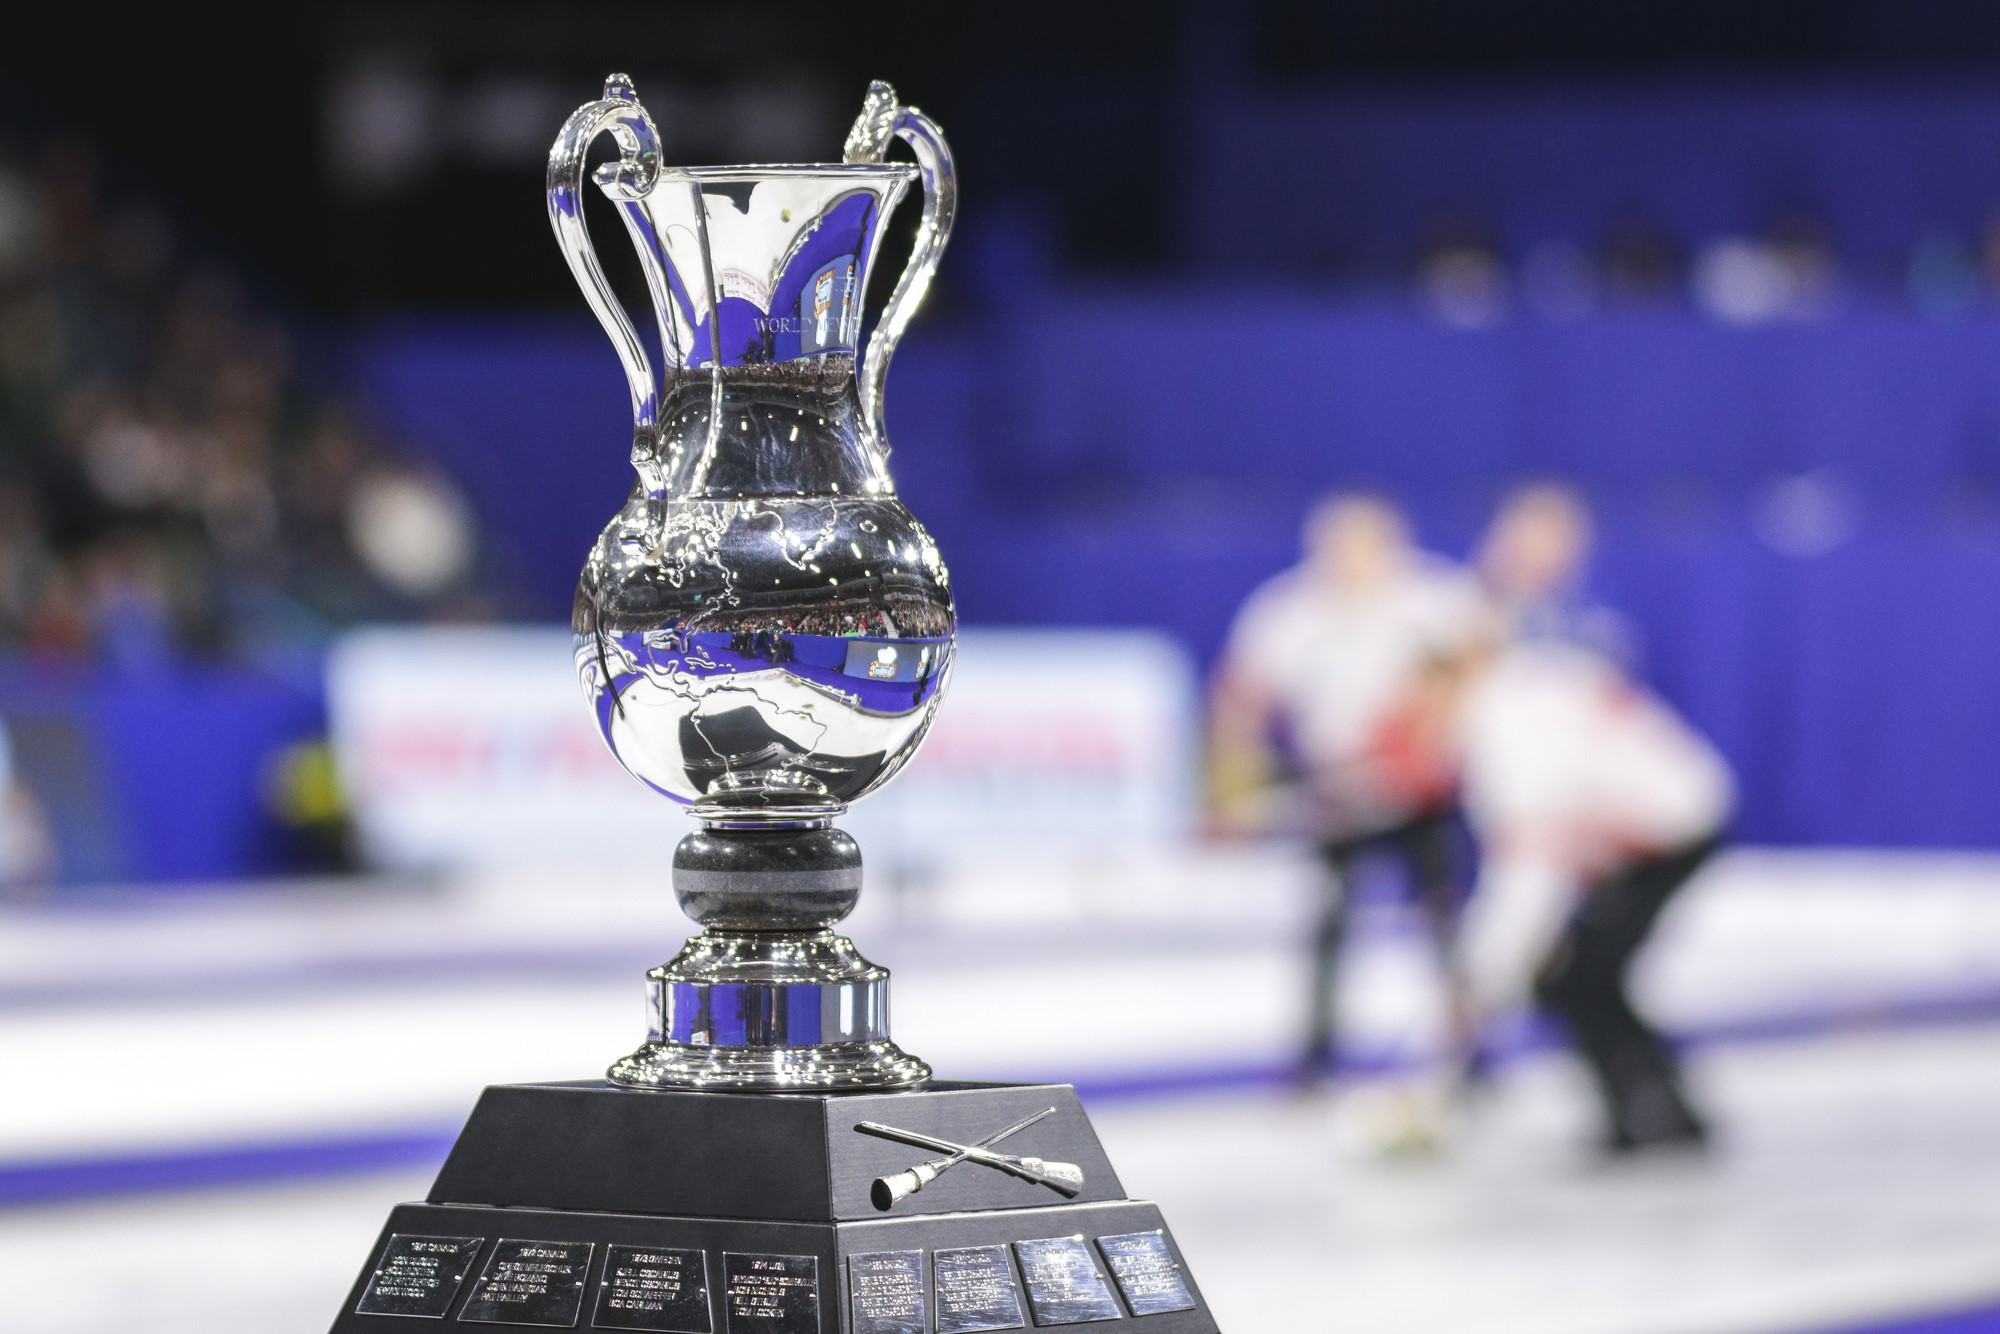 Ottawa will host the 2021 edition of the World Men's Curling Championship ©WCF